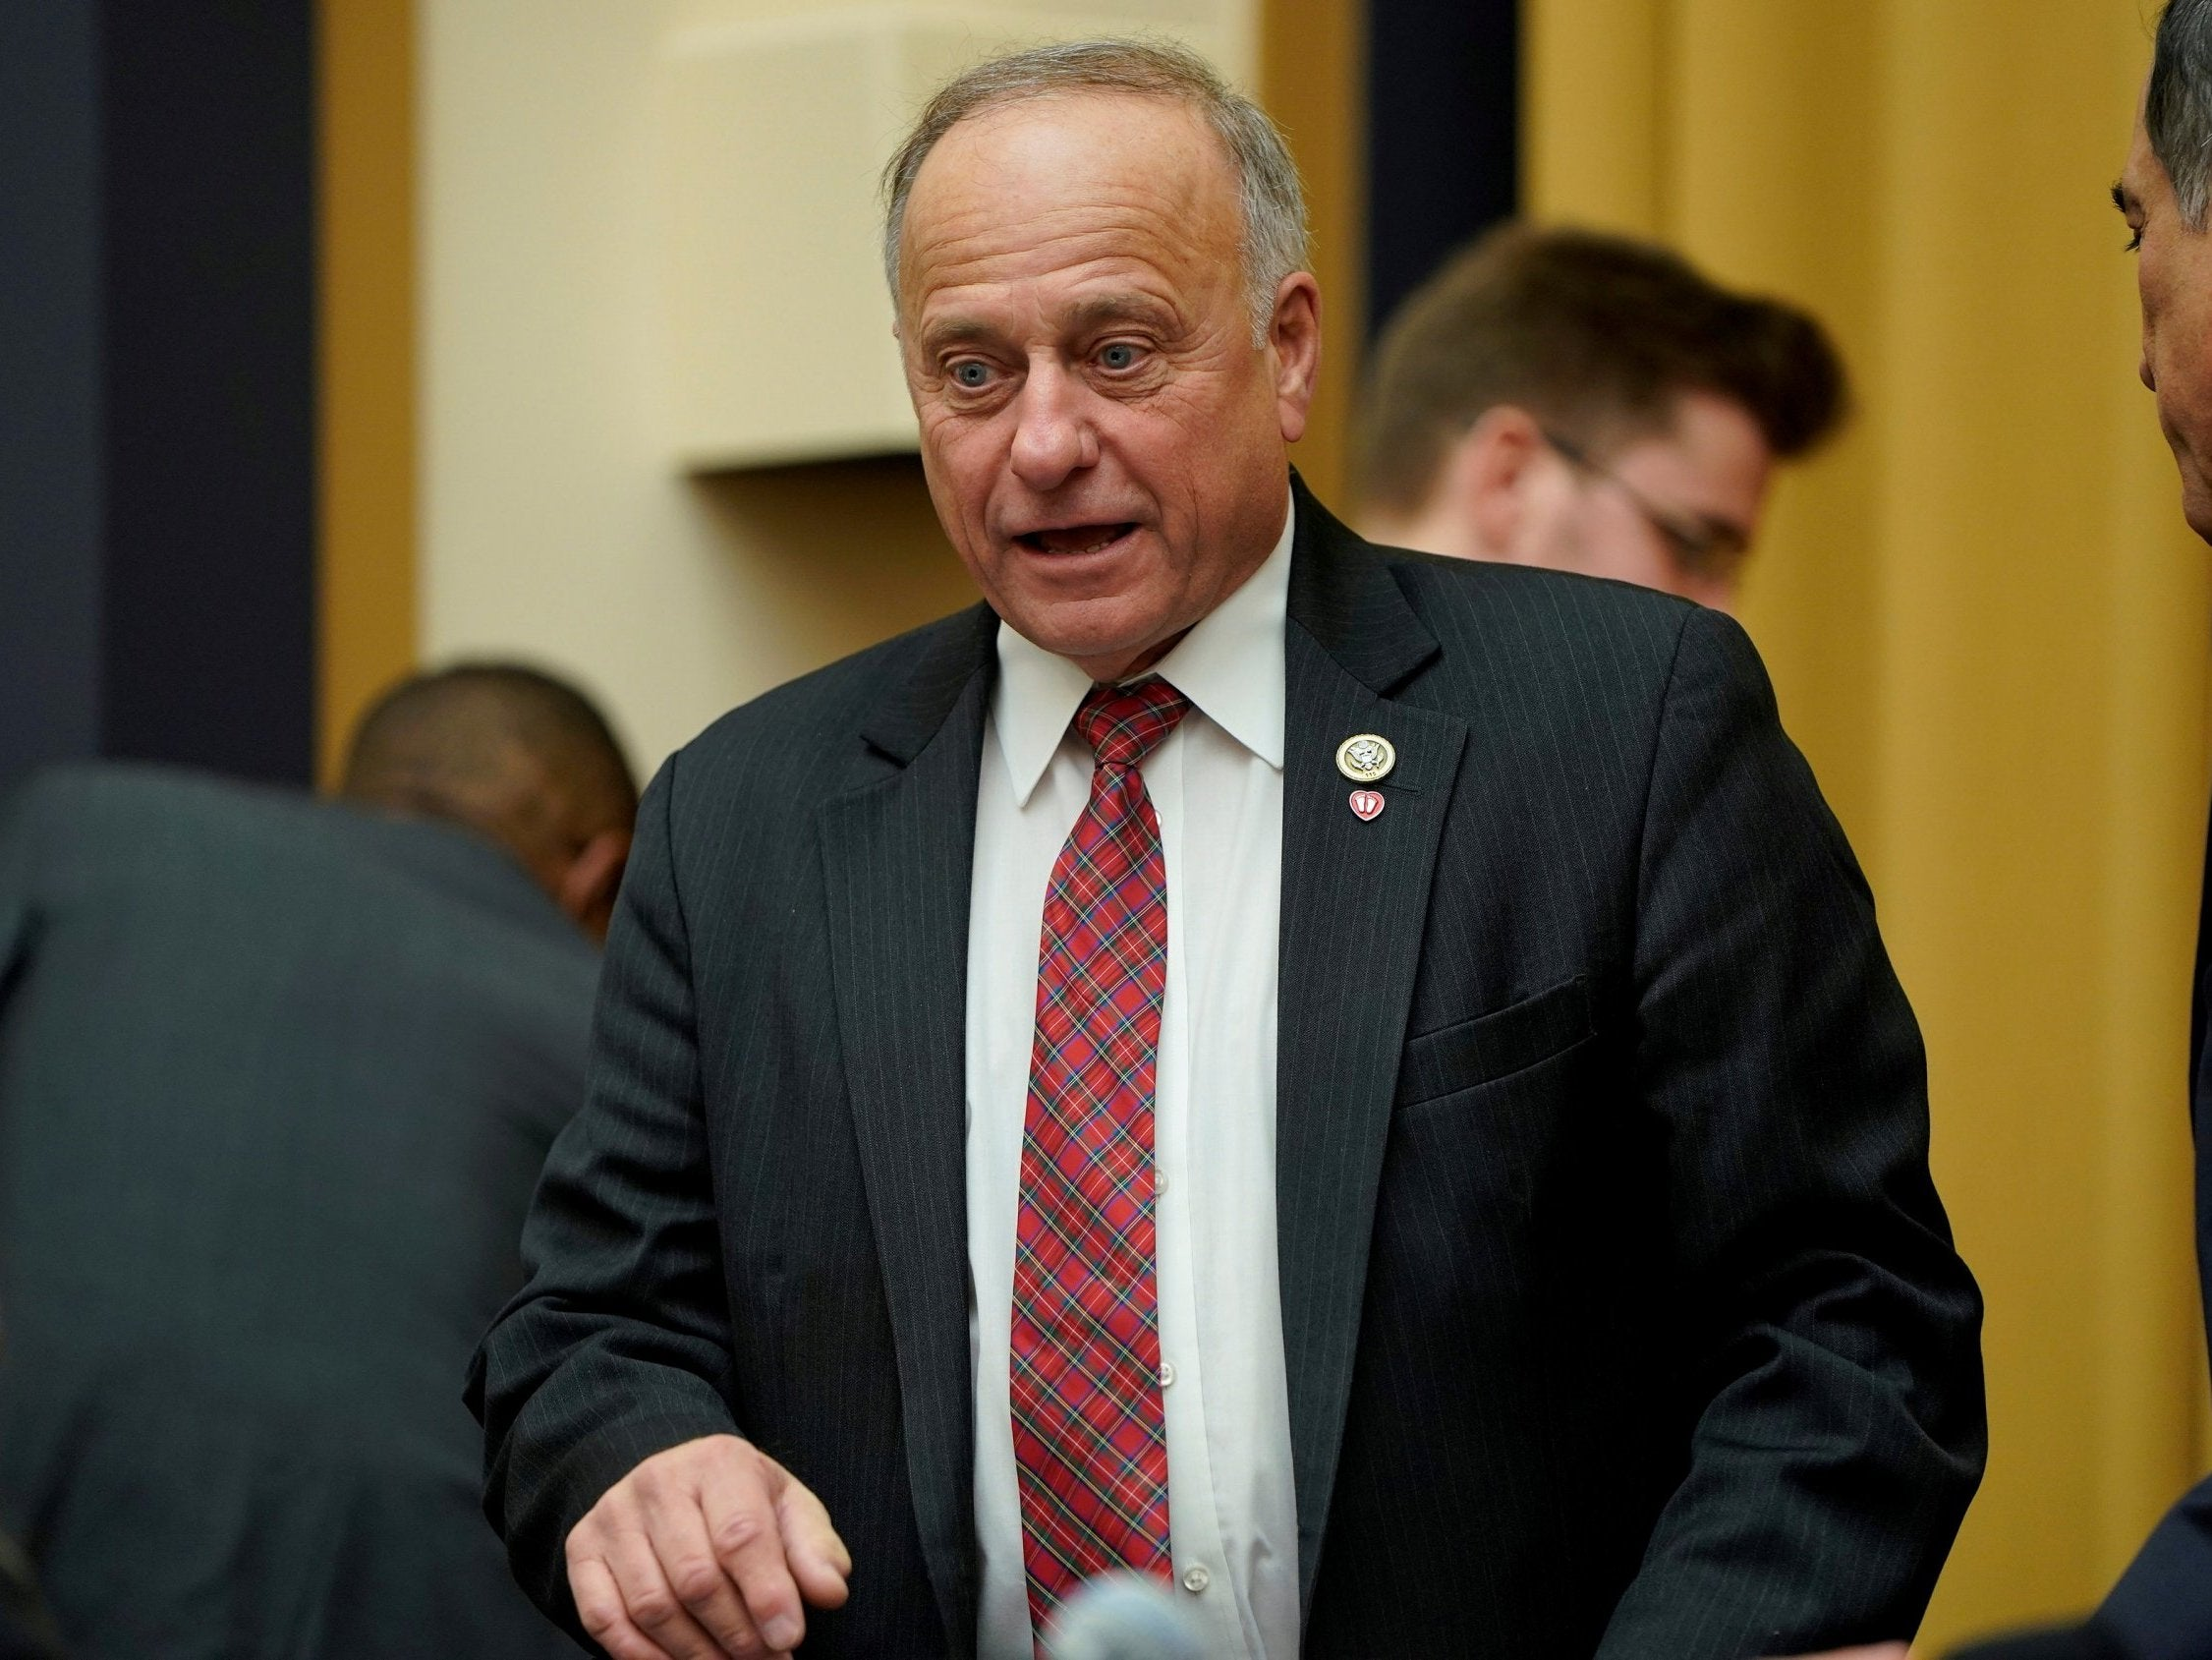 'Vile man': Mother of 'Success Kid' demands Republican Steve King stop using son's picture - independent